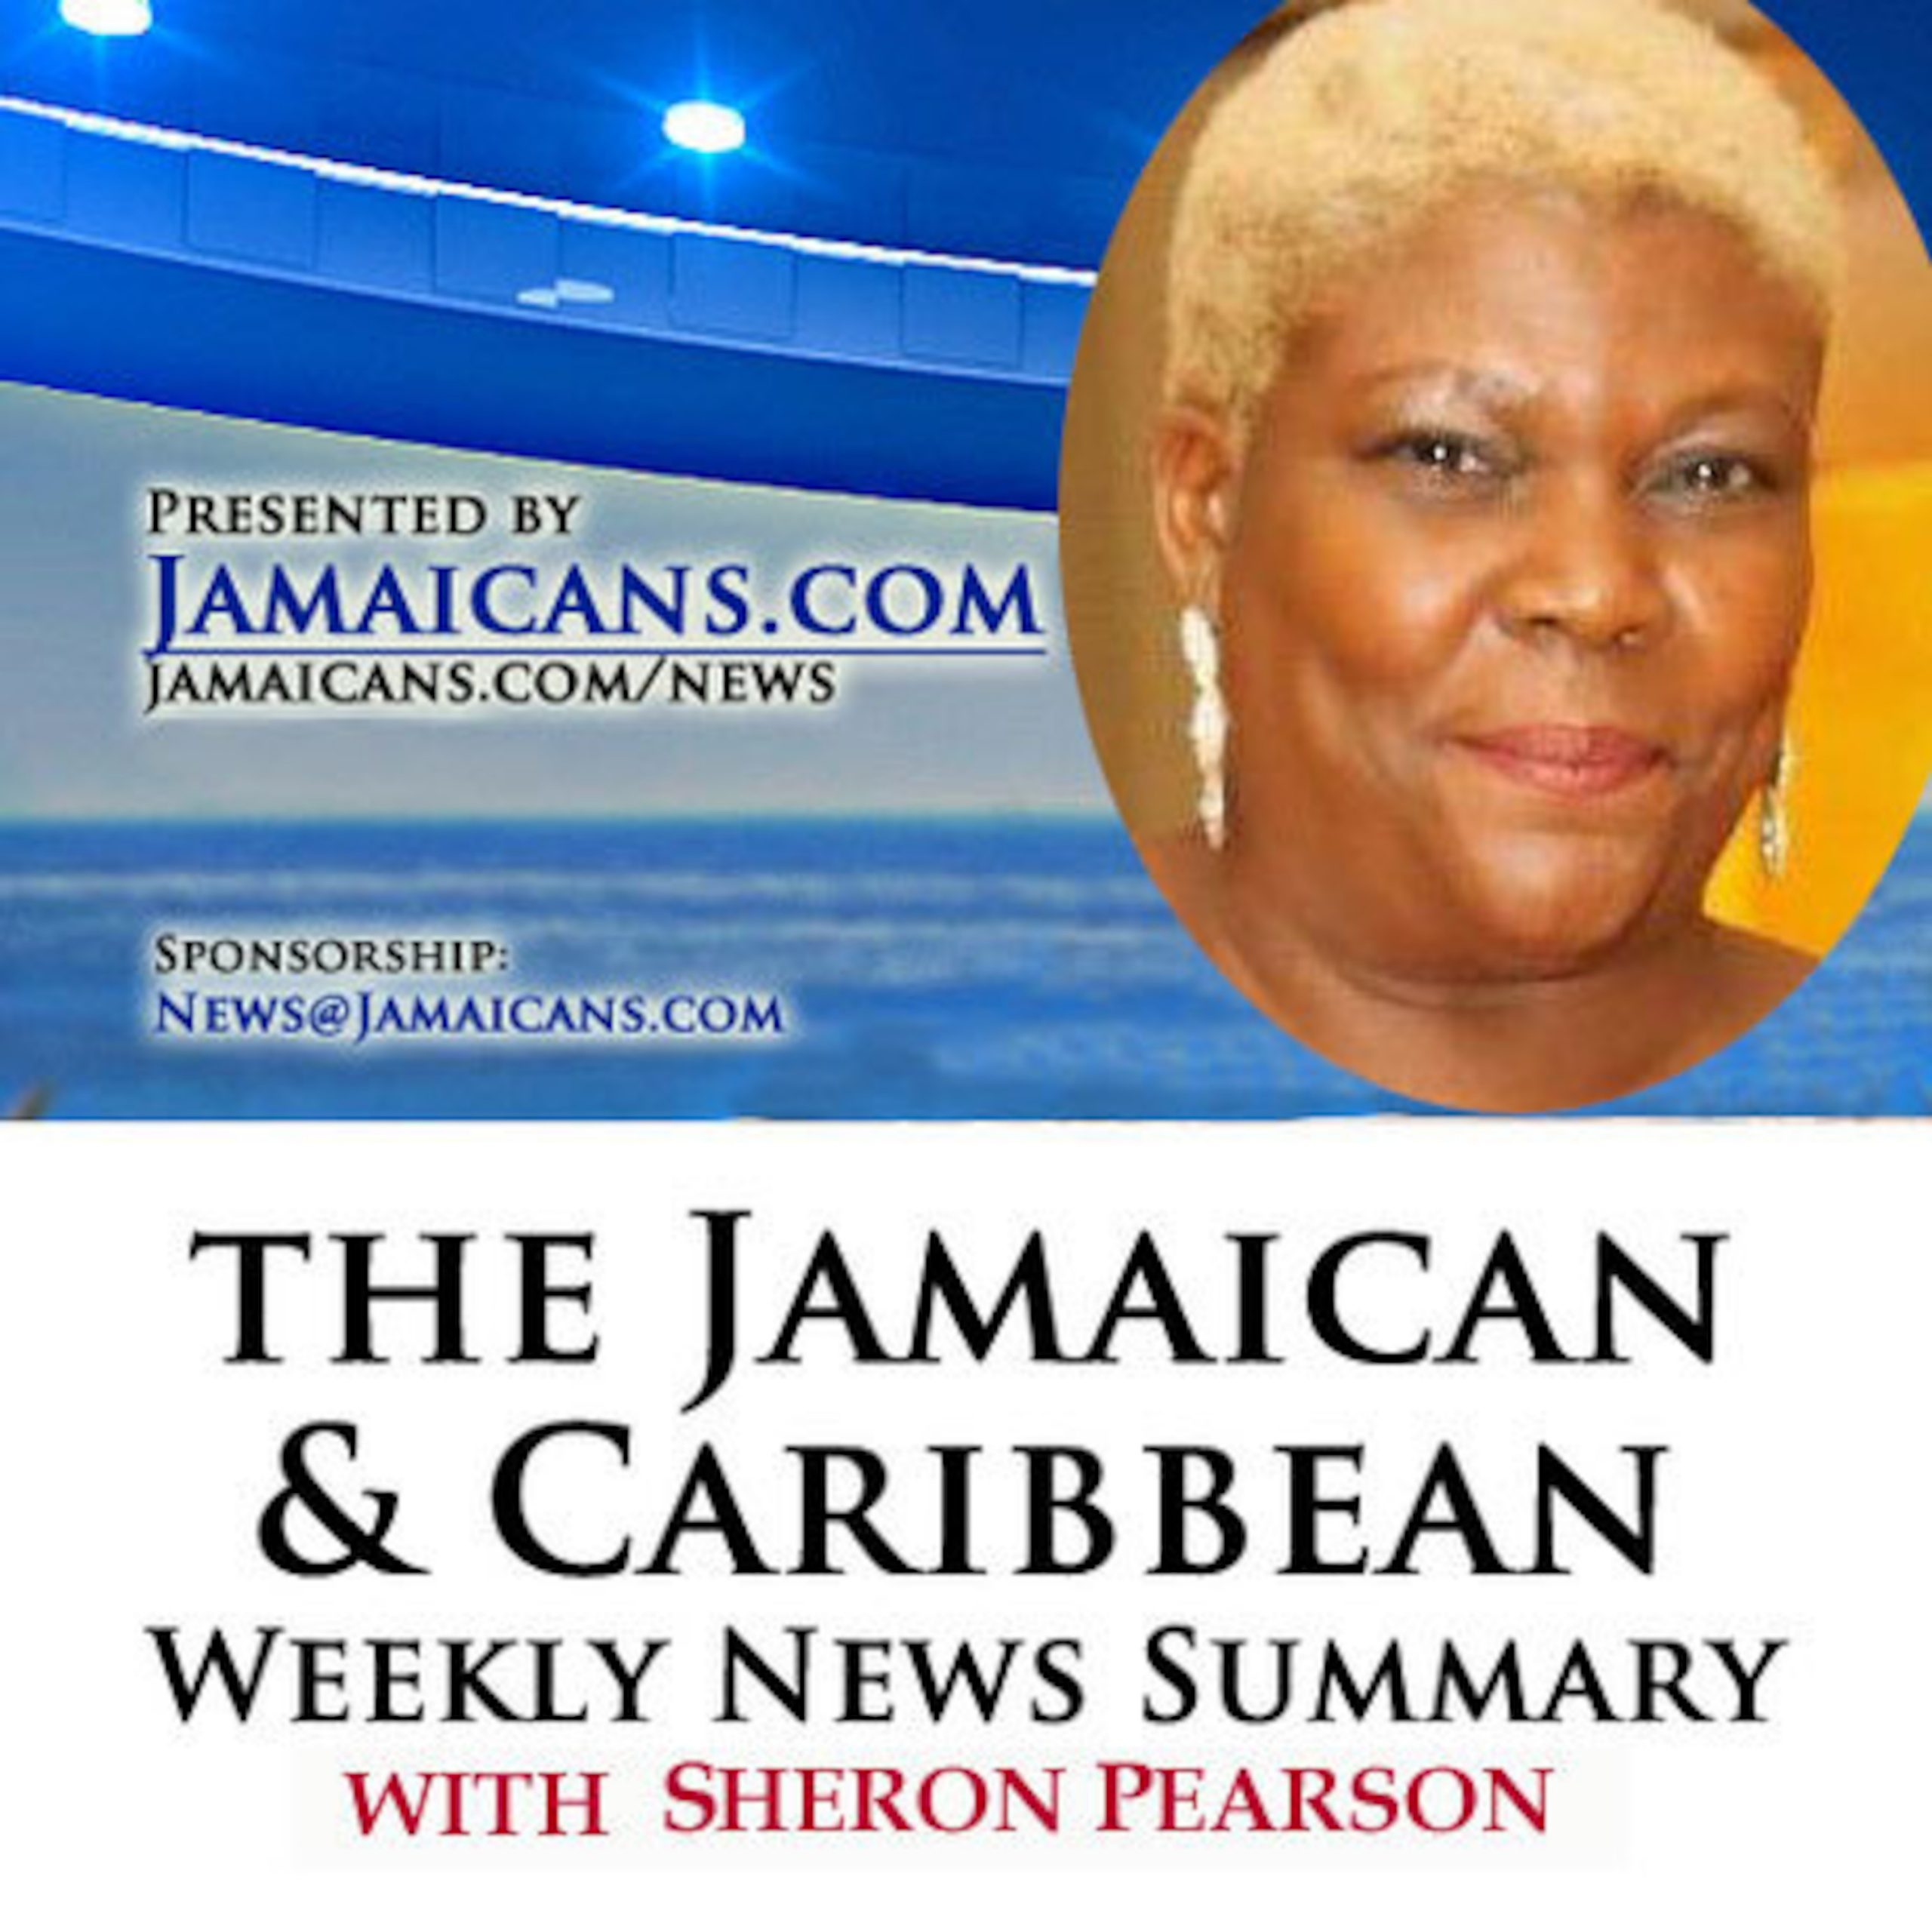 Listen to the Podcast of The Jamaica & Caribbean Weekly News Summary for the week ending April 10, 2020